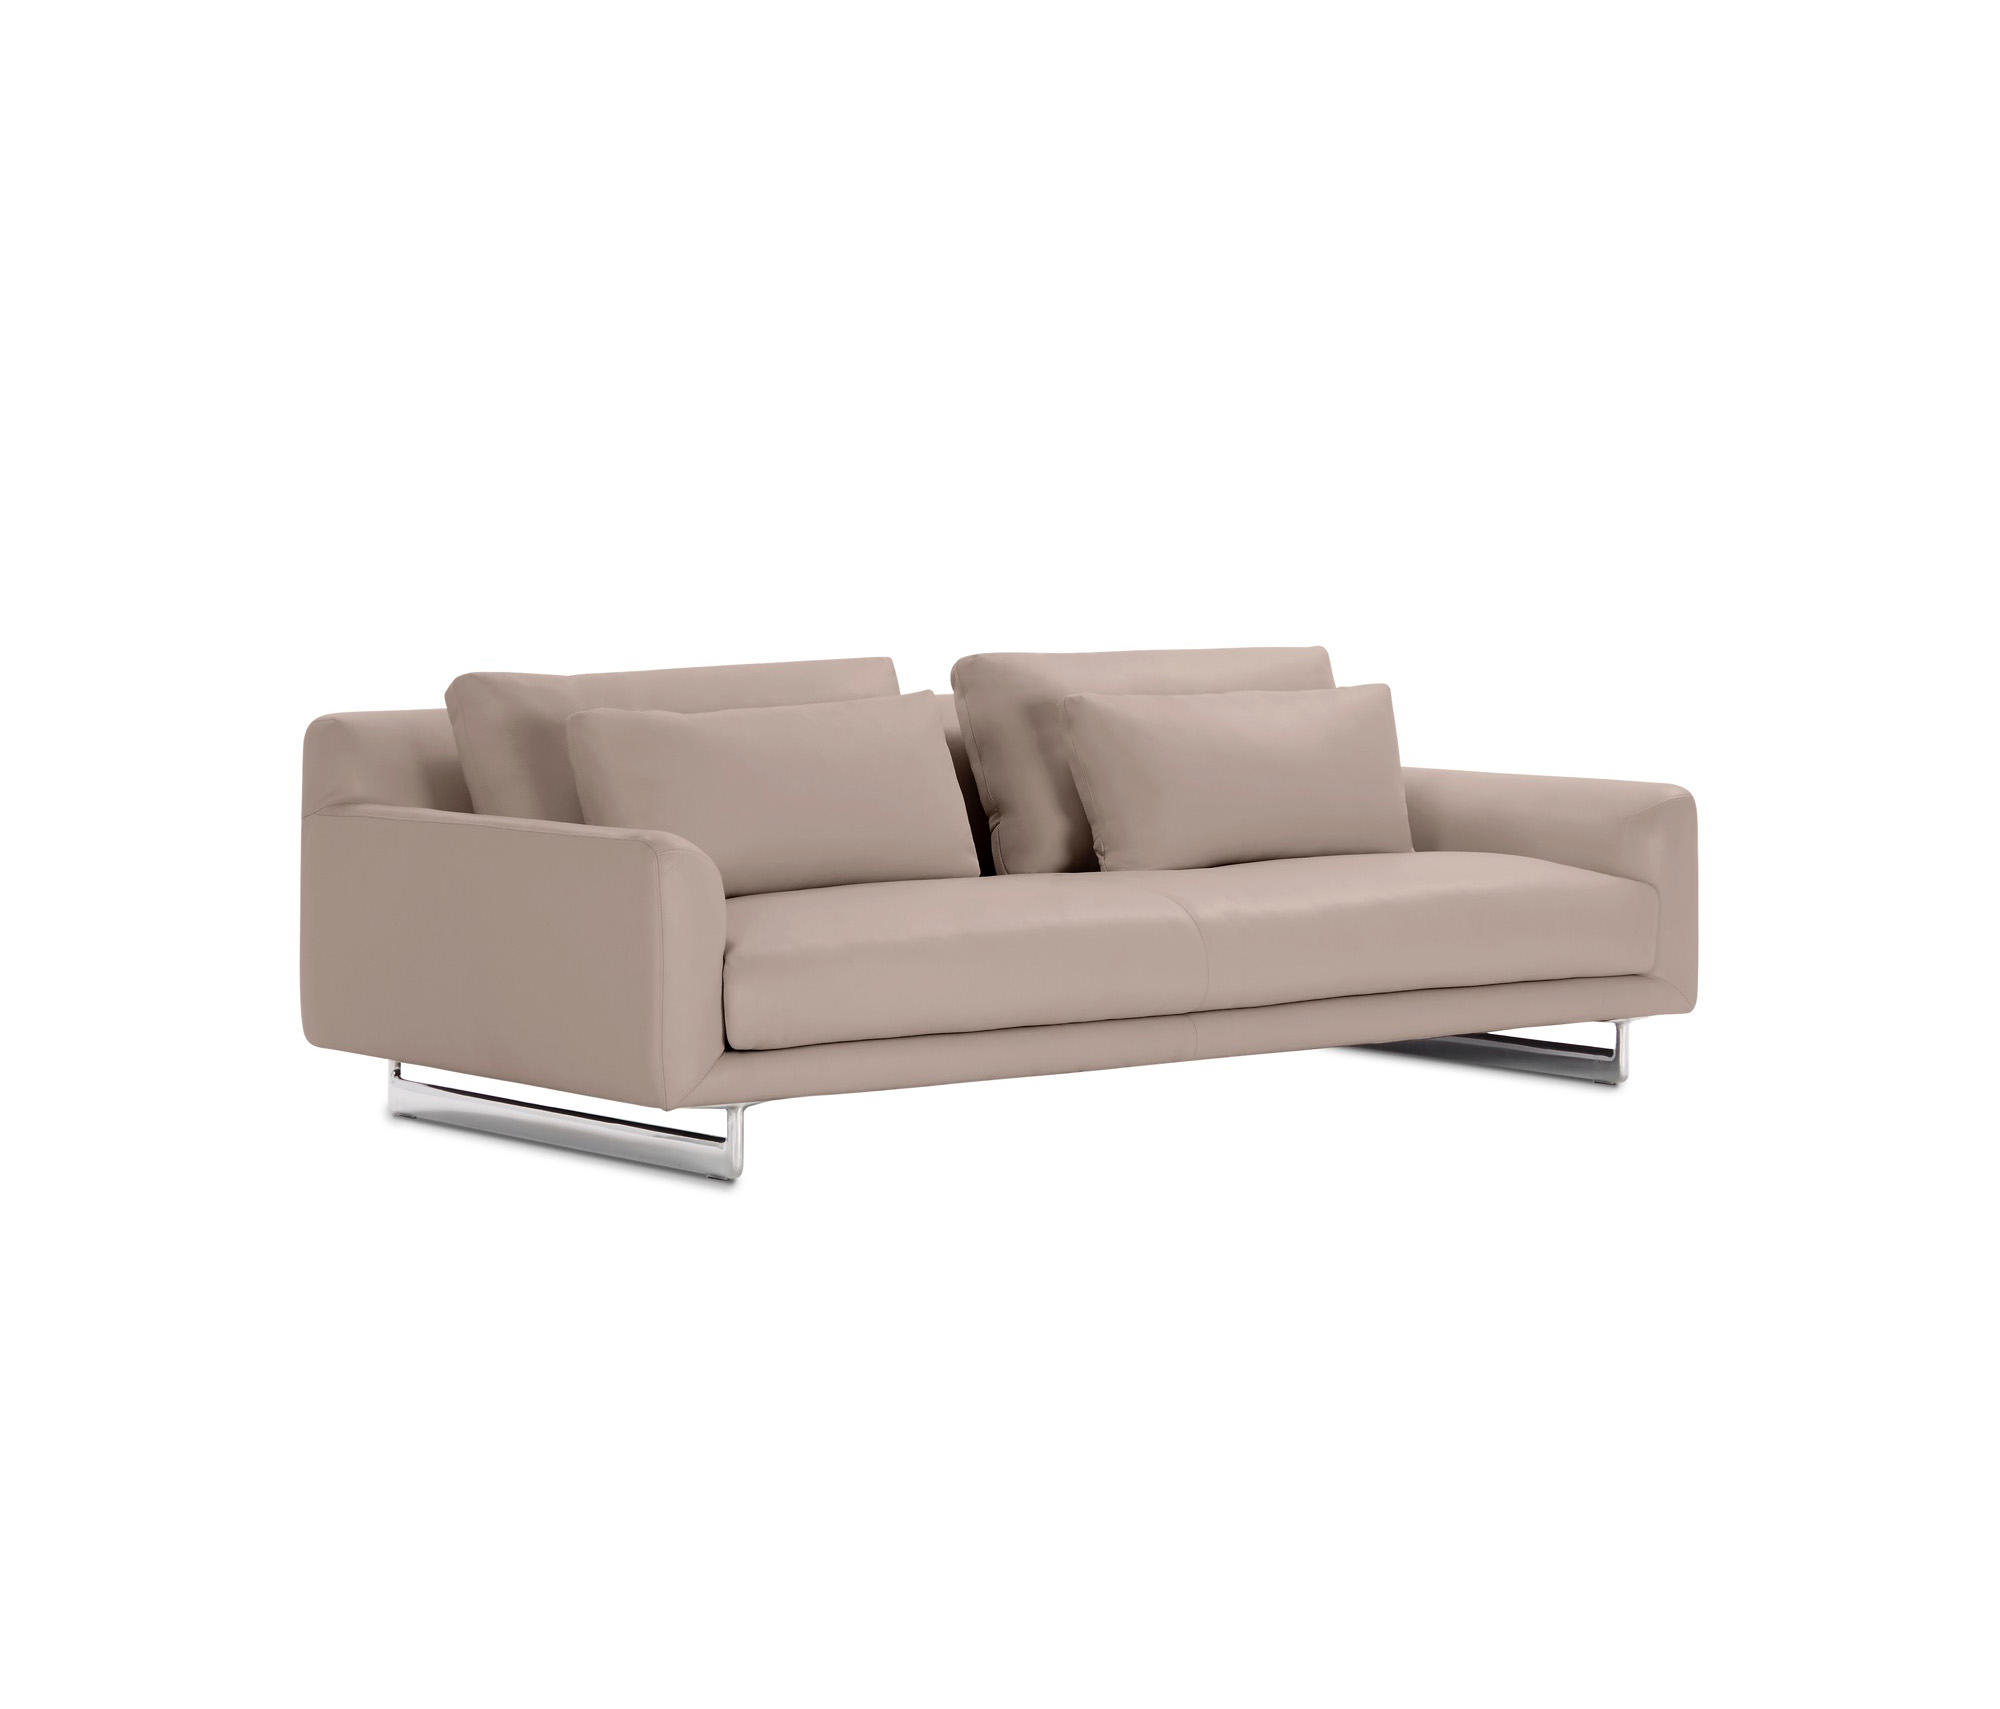 Lecco 93 Sofa Sofas From Design Within Reach Architonic